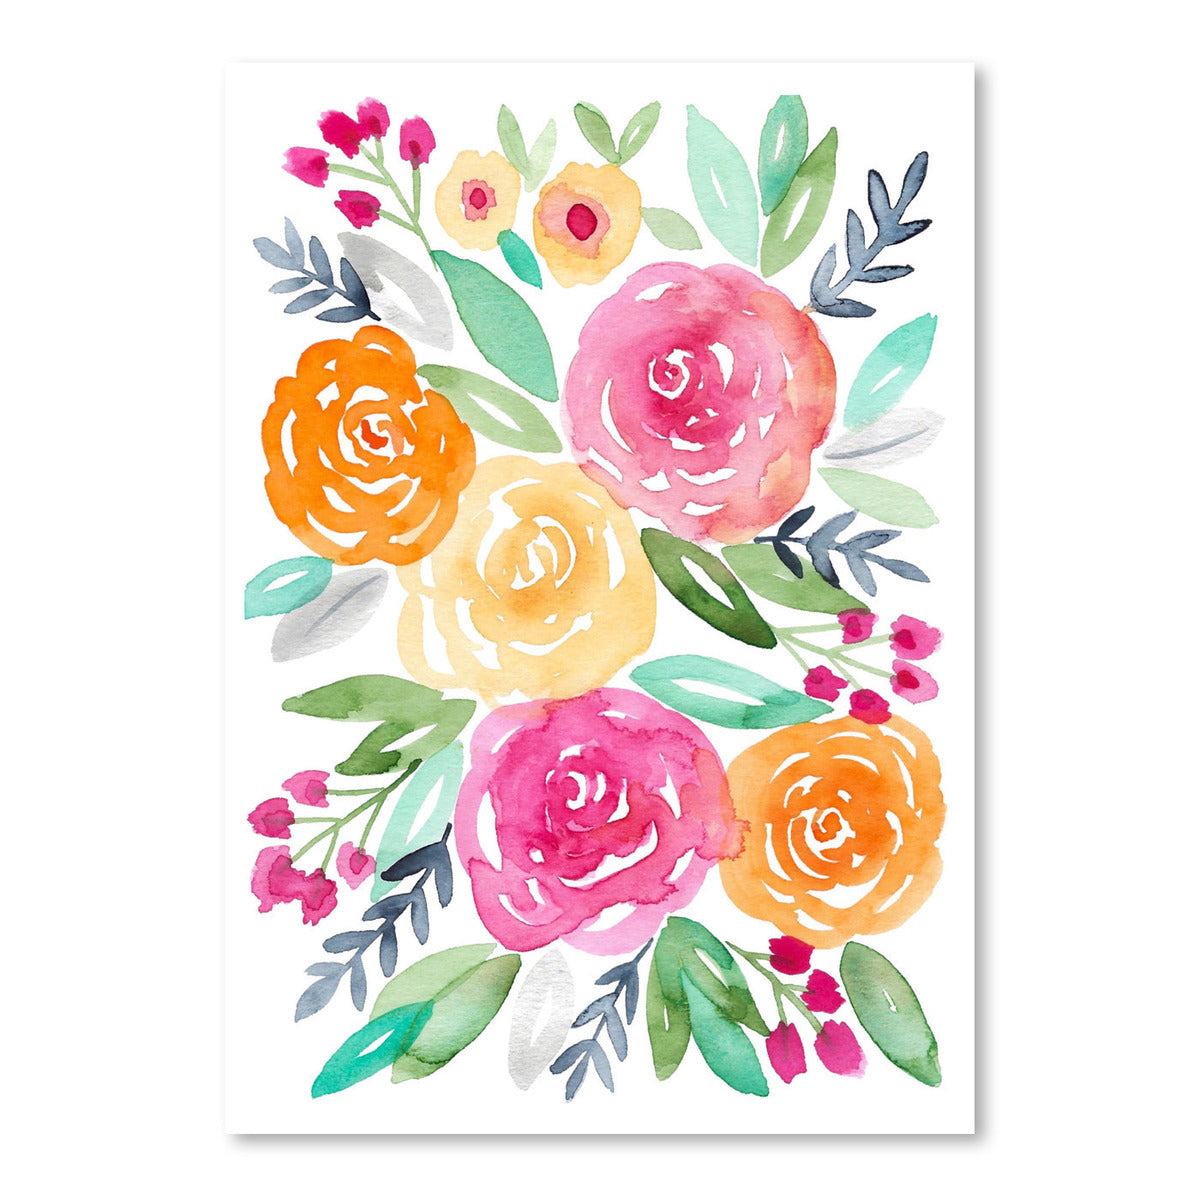 Watercolor Floral 2 by Lisa Nohren - Art Print - Americanflat